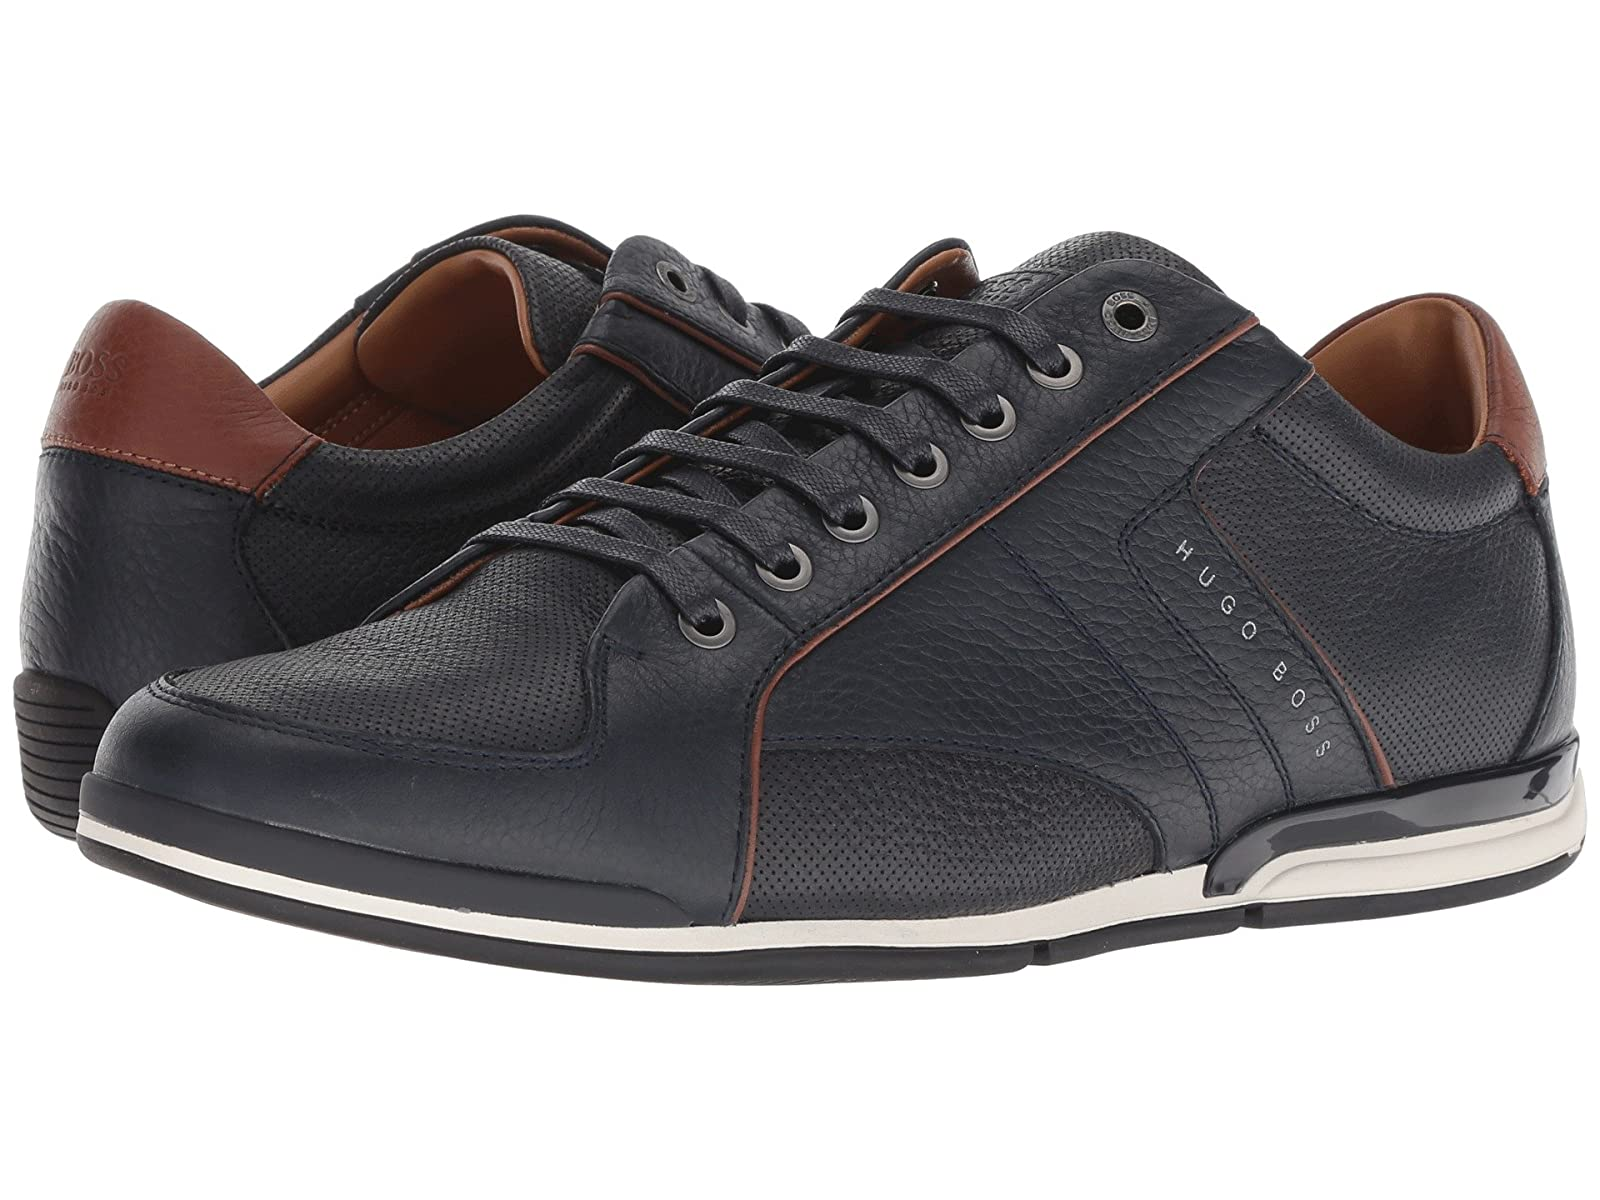 BOSS Hugo Boss Saturn Low Profile Sneaker by BOSS GreenAtmospheric grades have affordable shoes